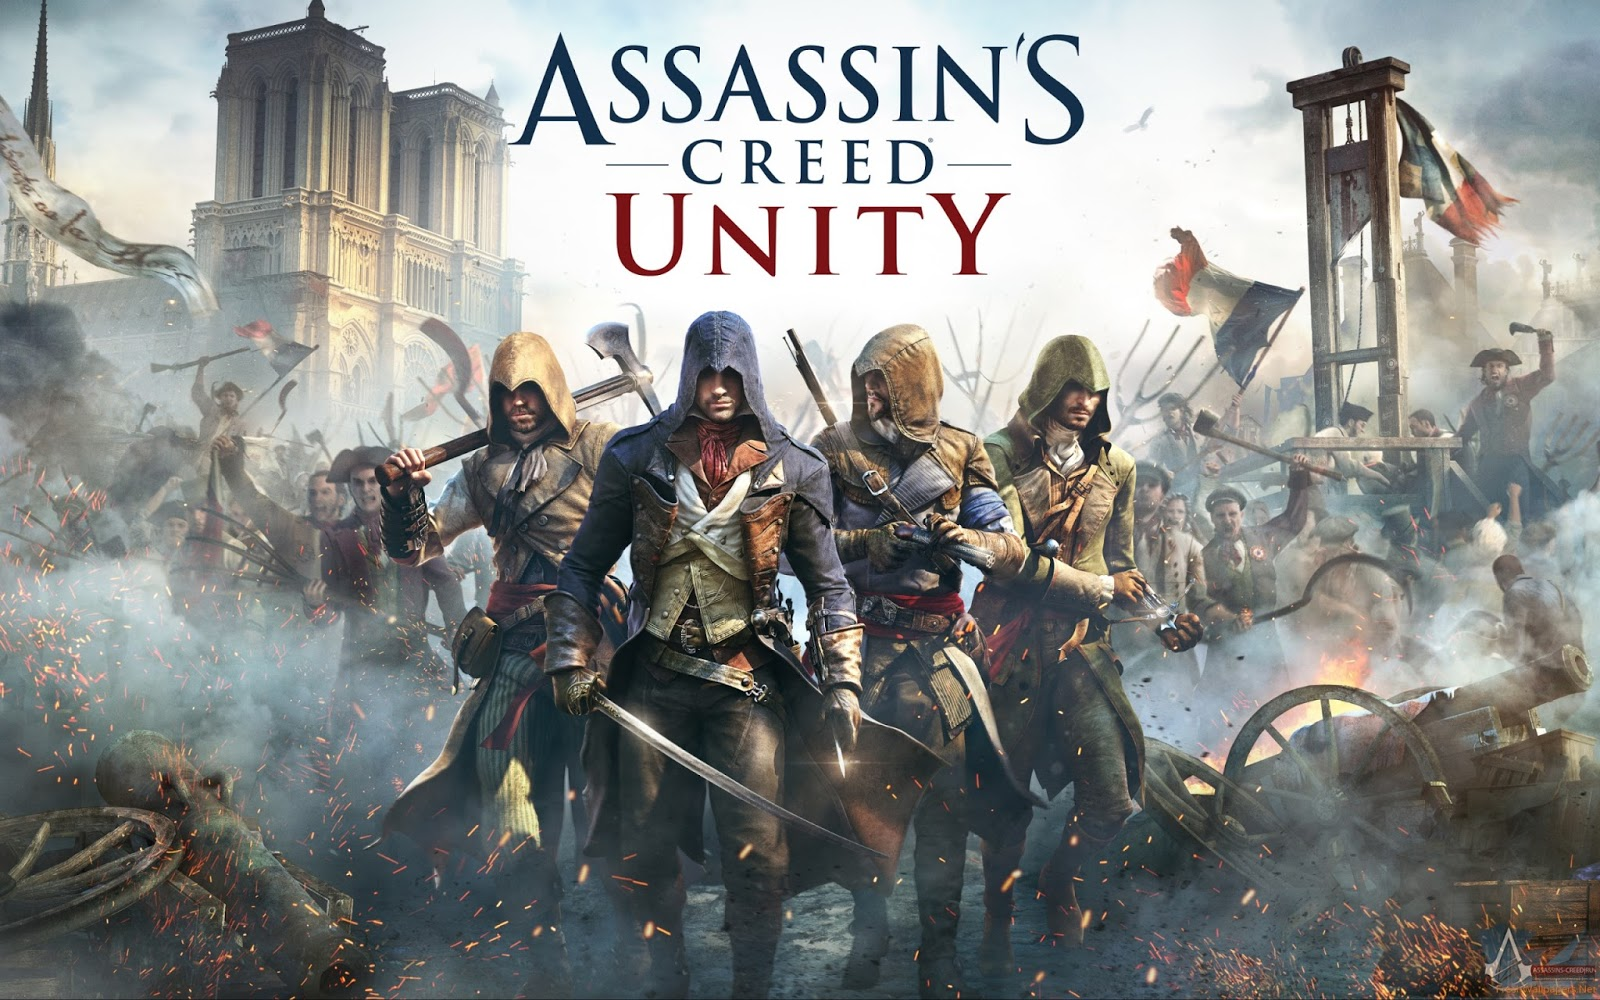 Assassin's creed unity pc game games for pc.